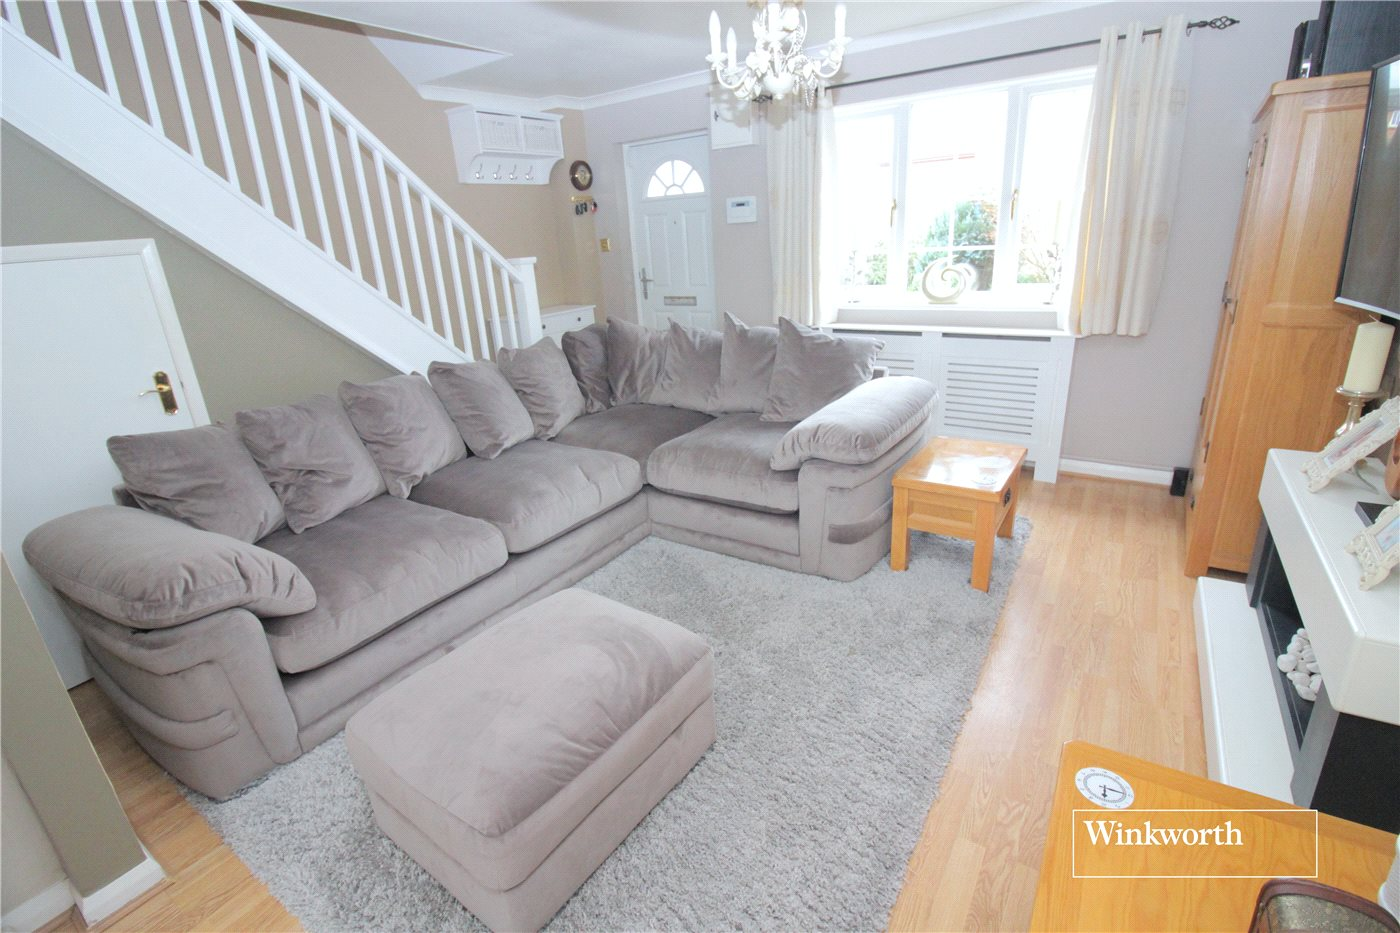 3 Bedrooms End Of Terrace House for sale in Siskin Close, Borehamwood, Hertfordshire, WD6